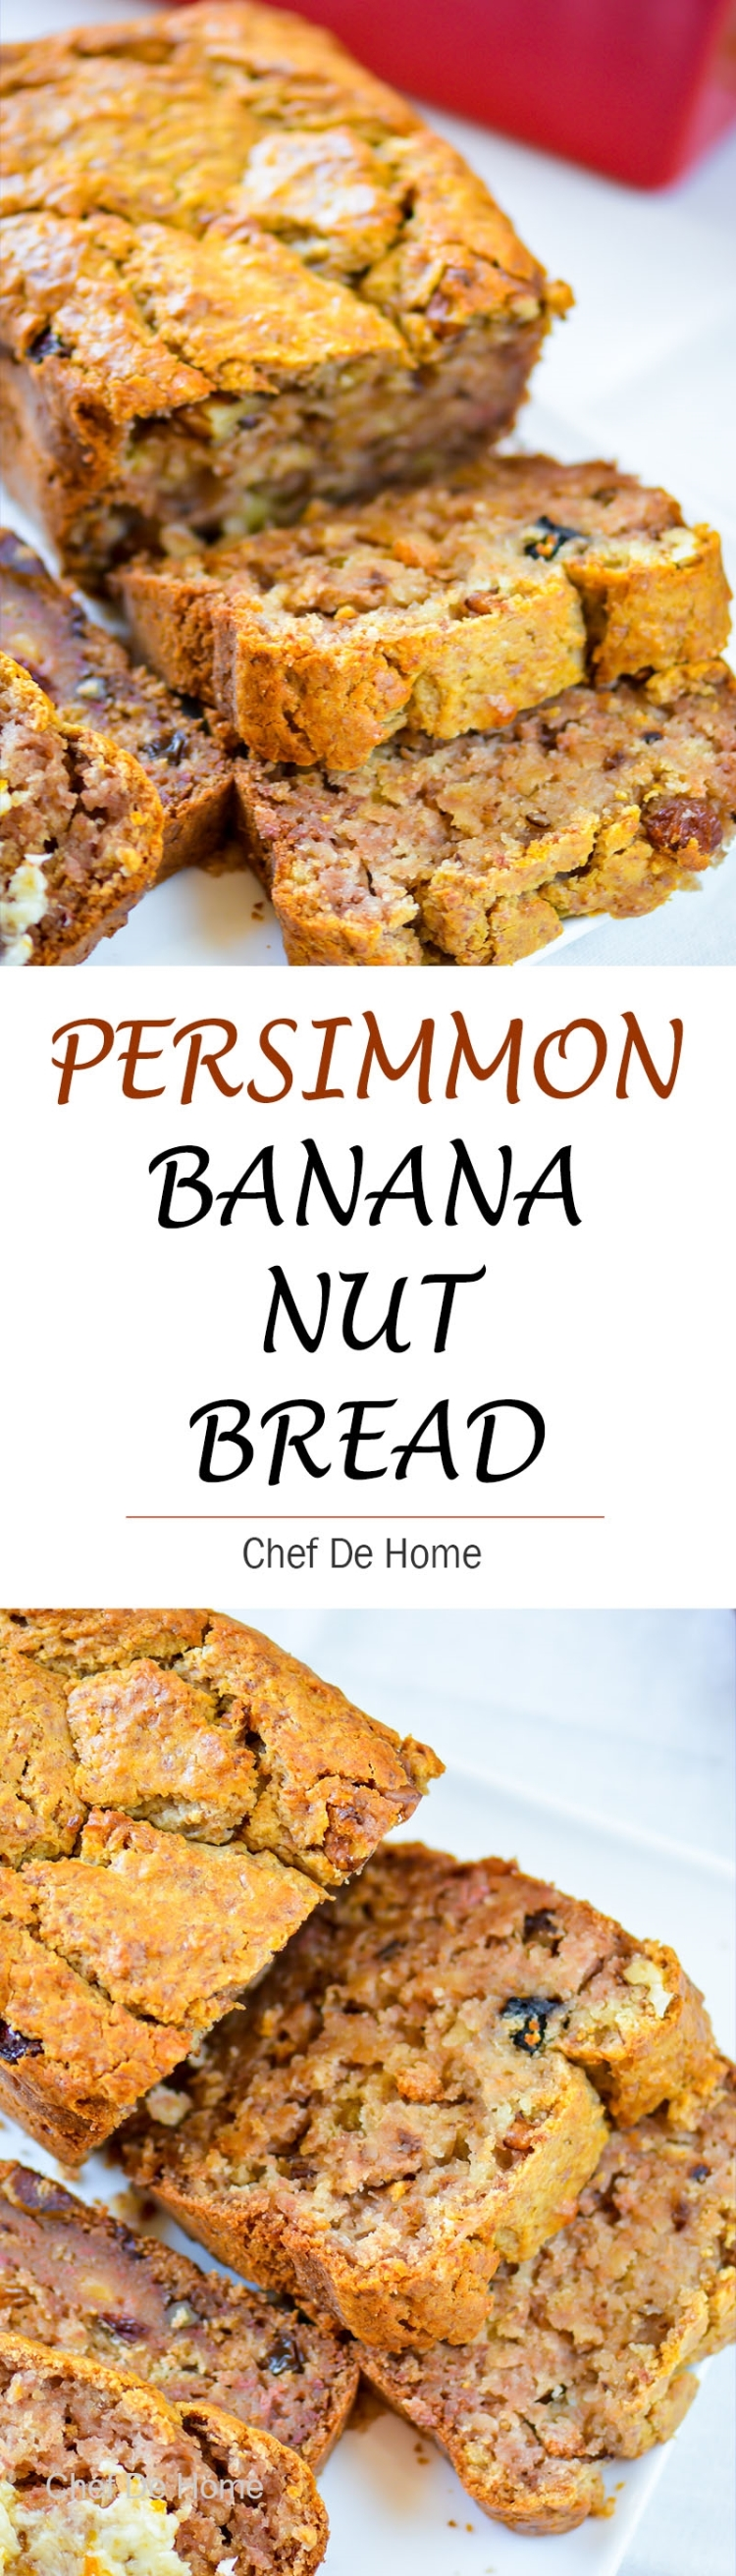 Breakfast for holiday with persimmon banana bread | chefdehome.com